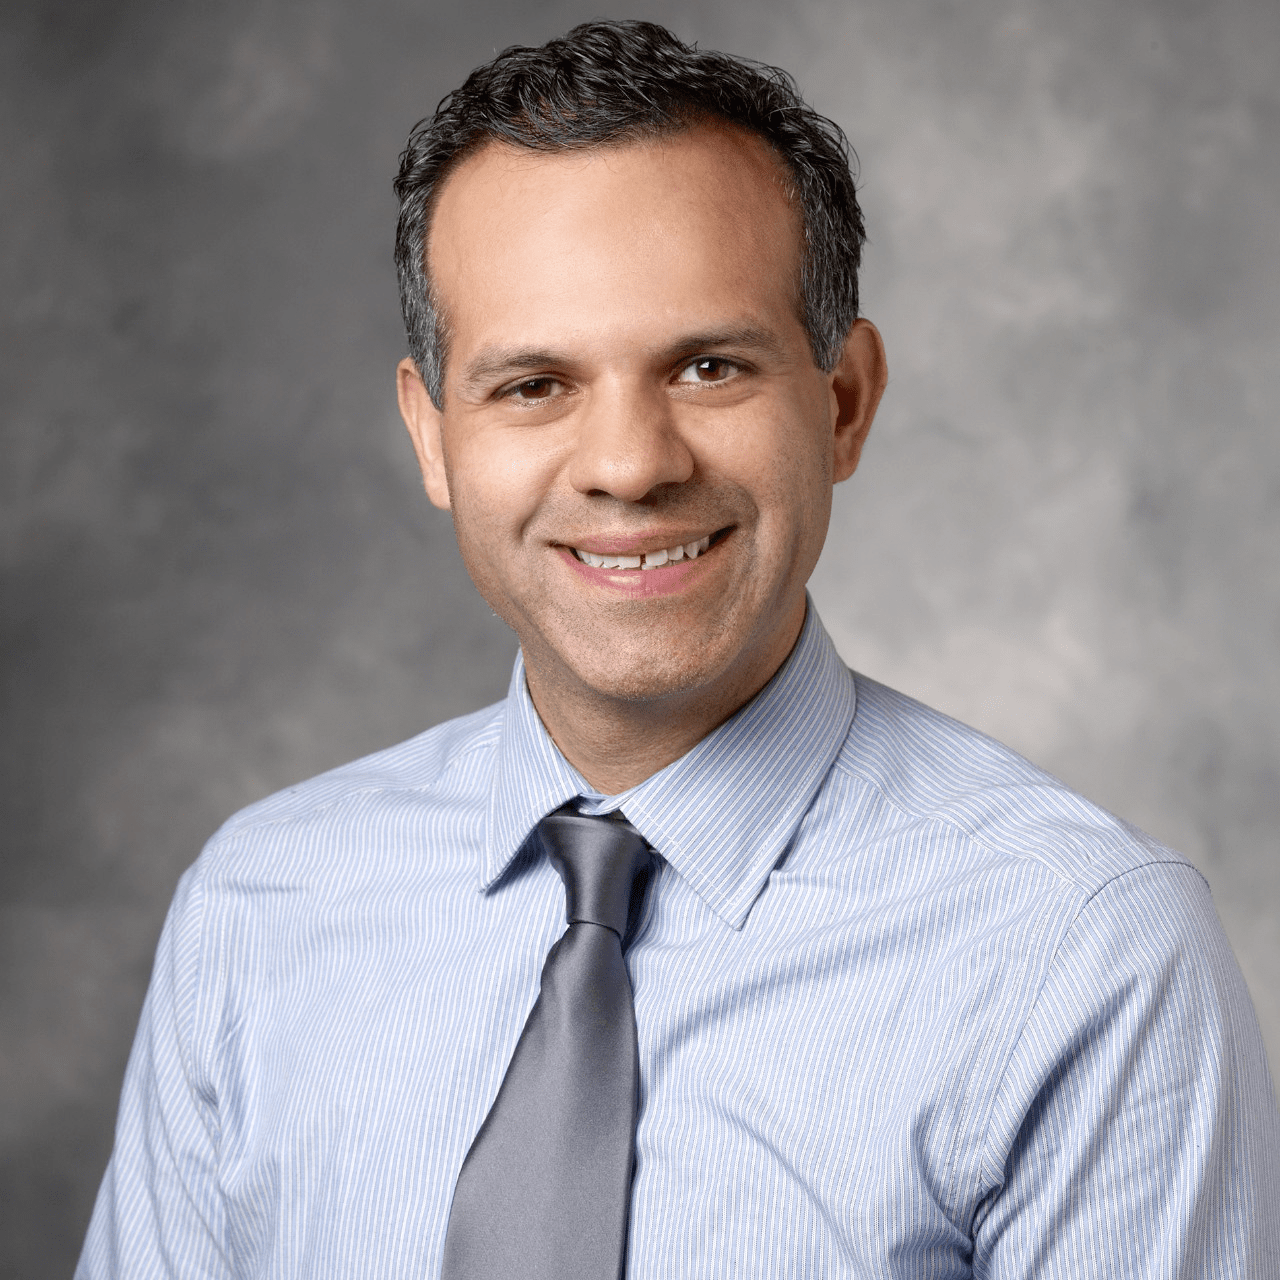 Dr. Marco Perez - Associate Professor of Medicine (Cardiovascular Medicine) at the Stanford University Medical Center and co-founder of ReadMyECG